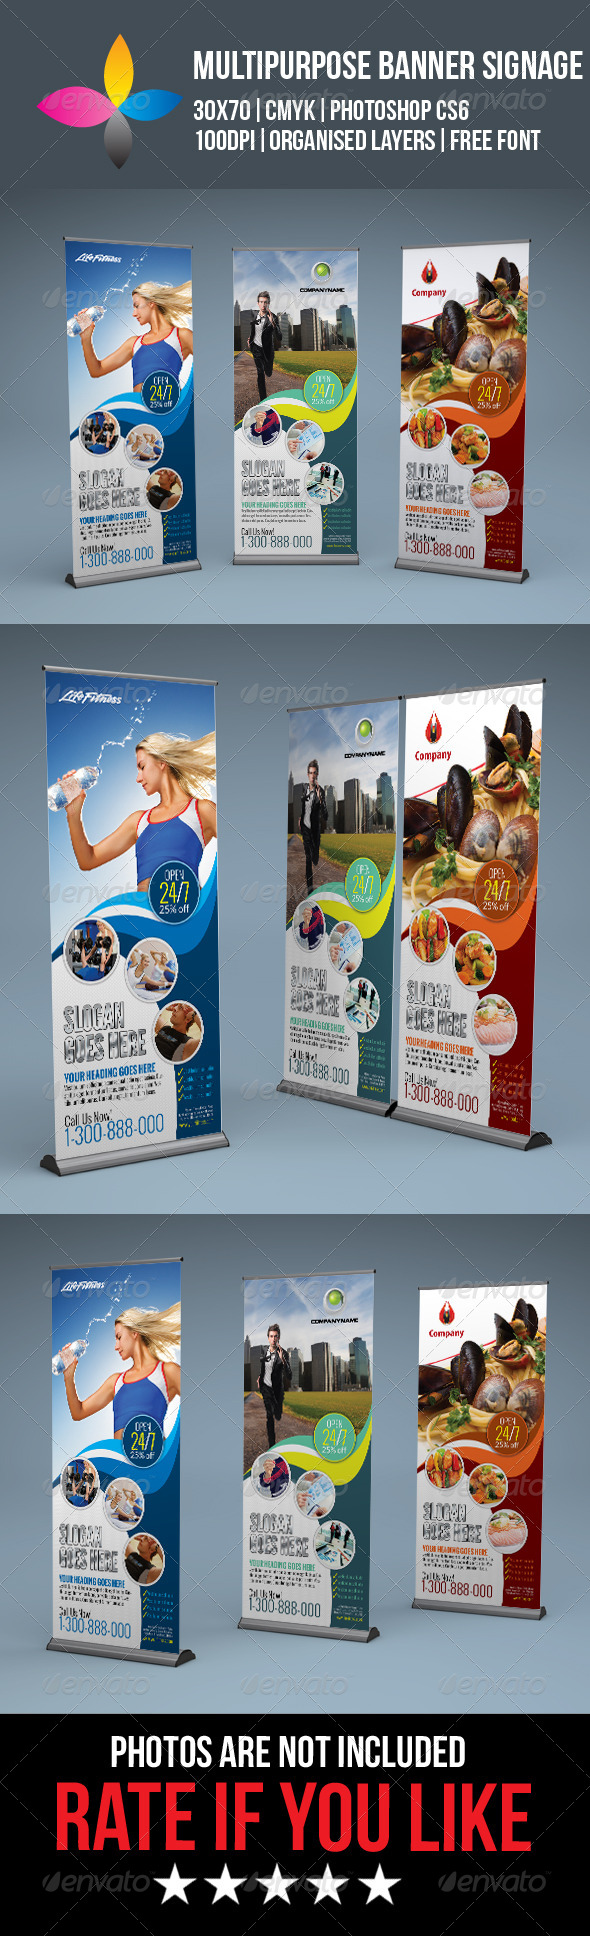 GraphicRiver Multipurpose Roll Up Banner Signage 8259356